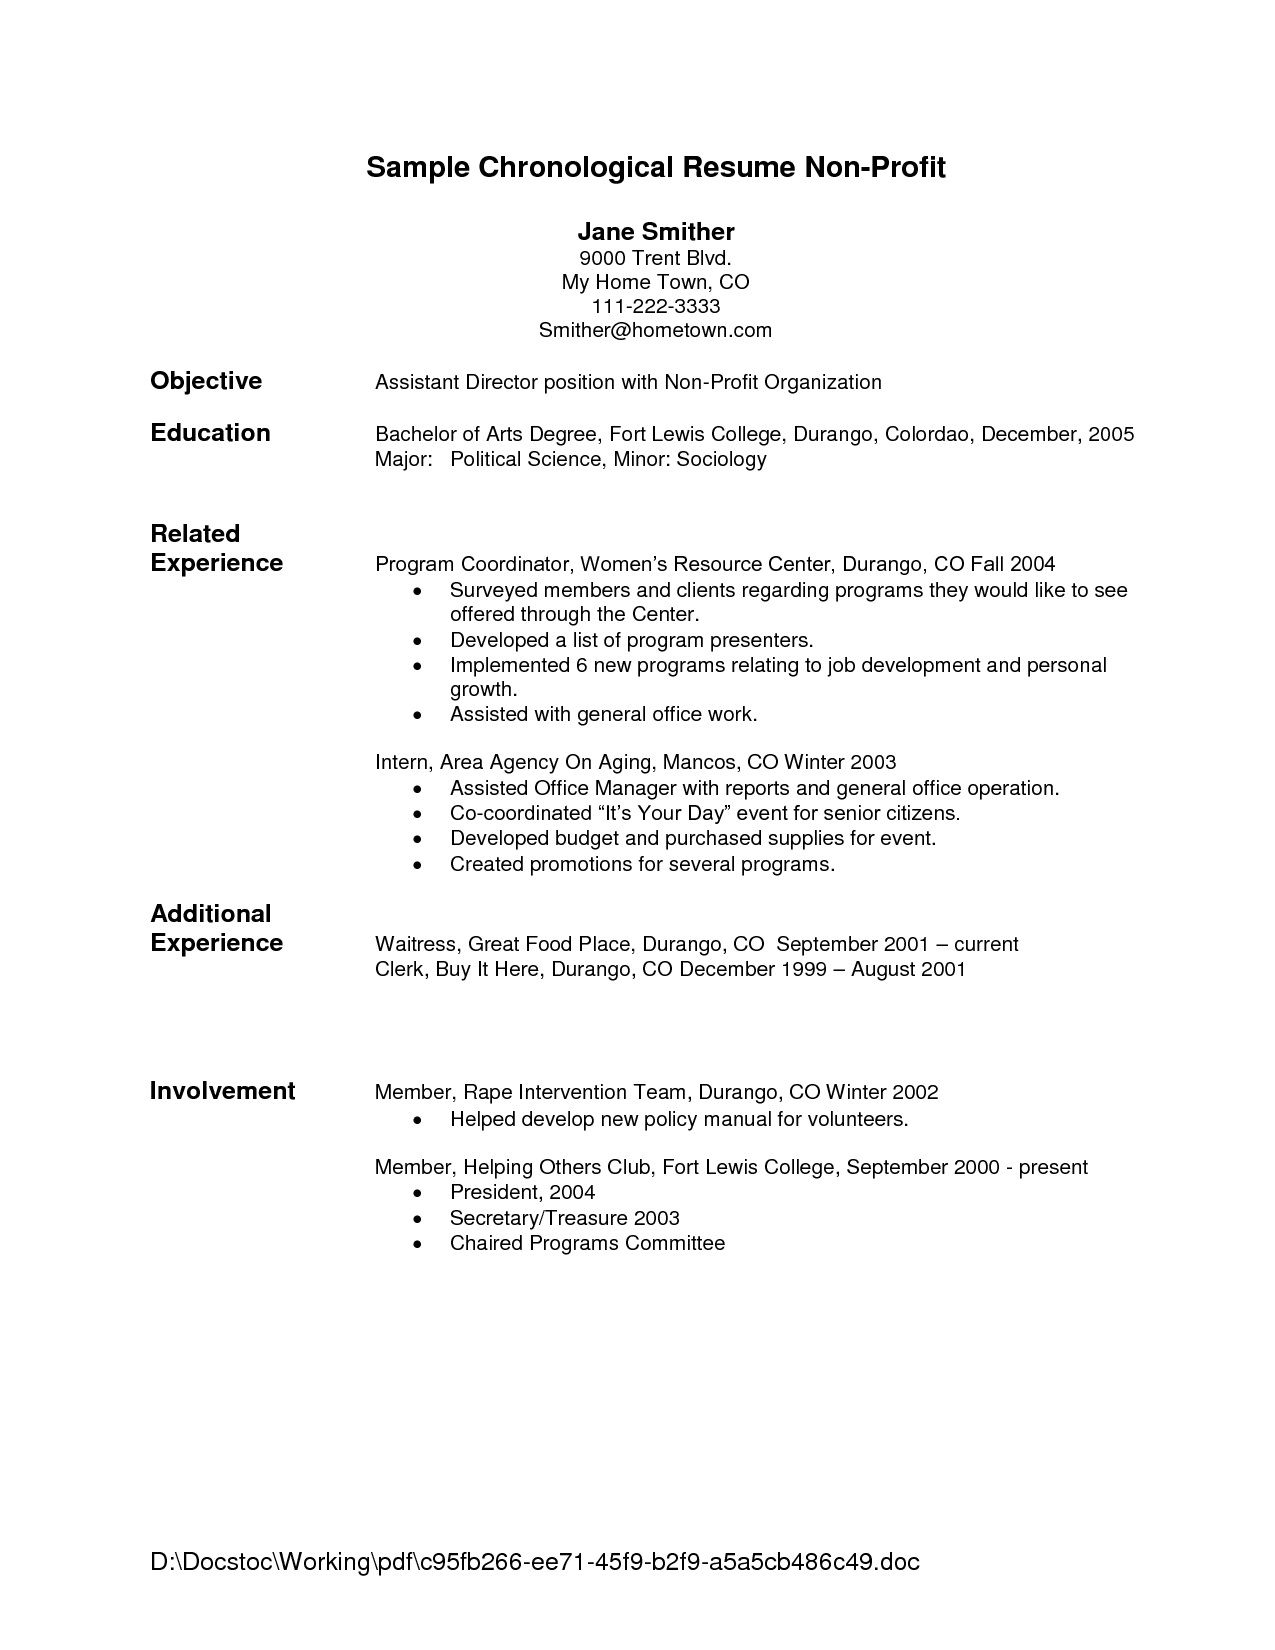 001 Impressive Free Chronological Resume Template Inspiration  2020 CvFull